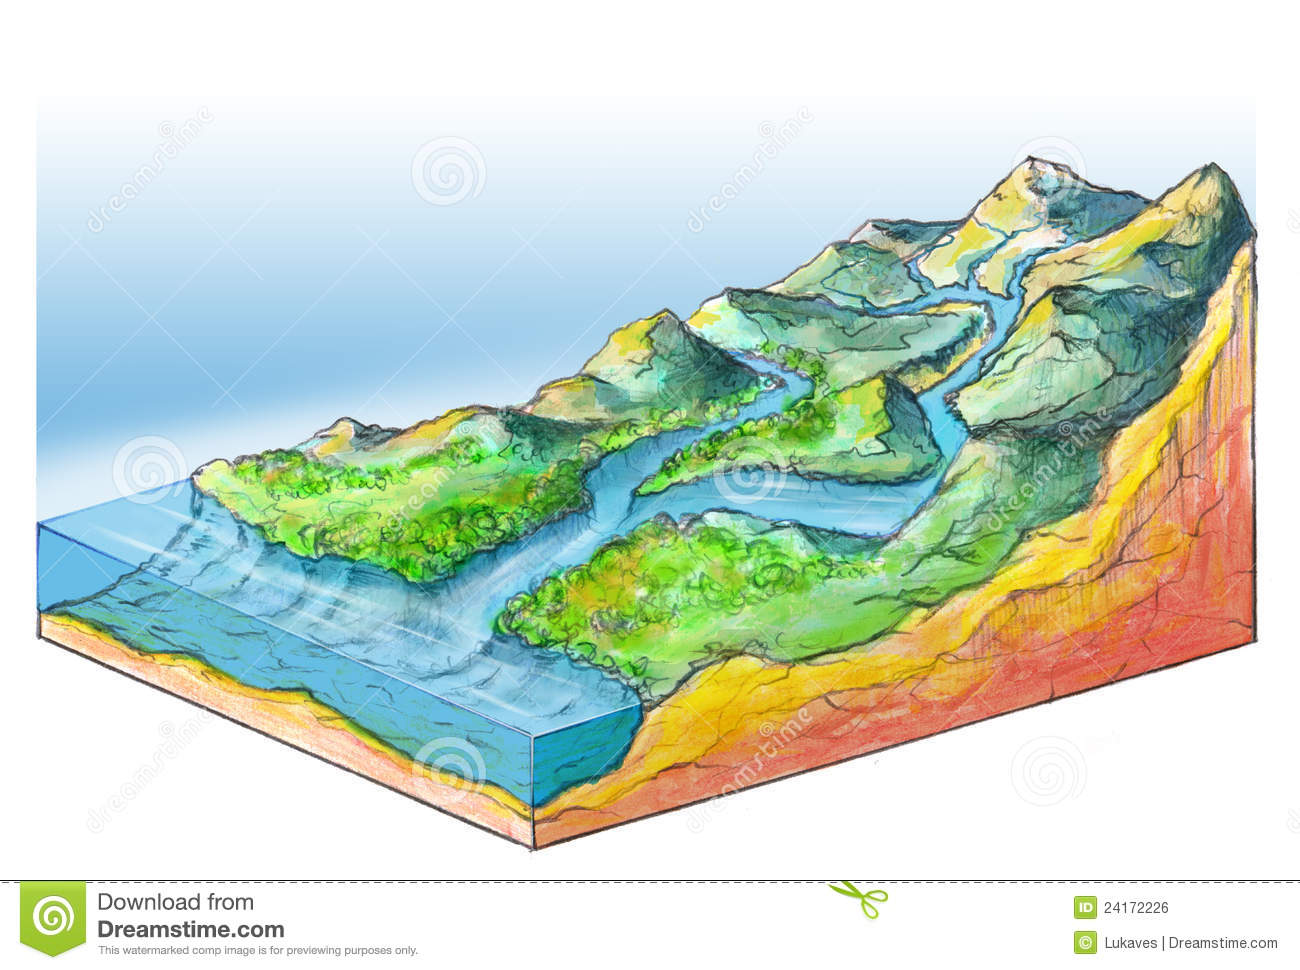 mississippi river map with Royalty Free Stock Image River Mouth Image24172226 on River Safari Photos as well Maps Mississippi River Flooding 2011 additionally Usa Geog additionally Viewgame furthermore downtowndavenport.